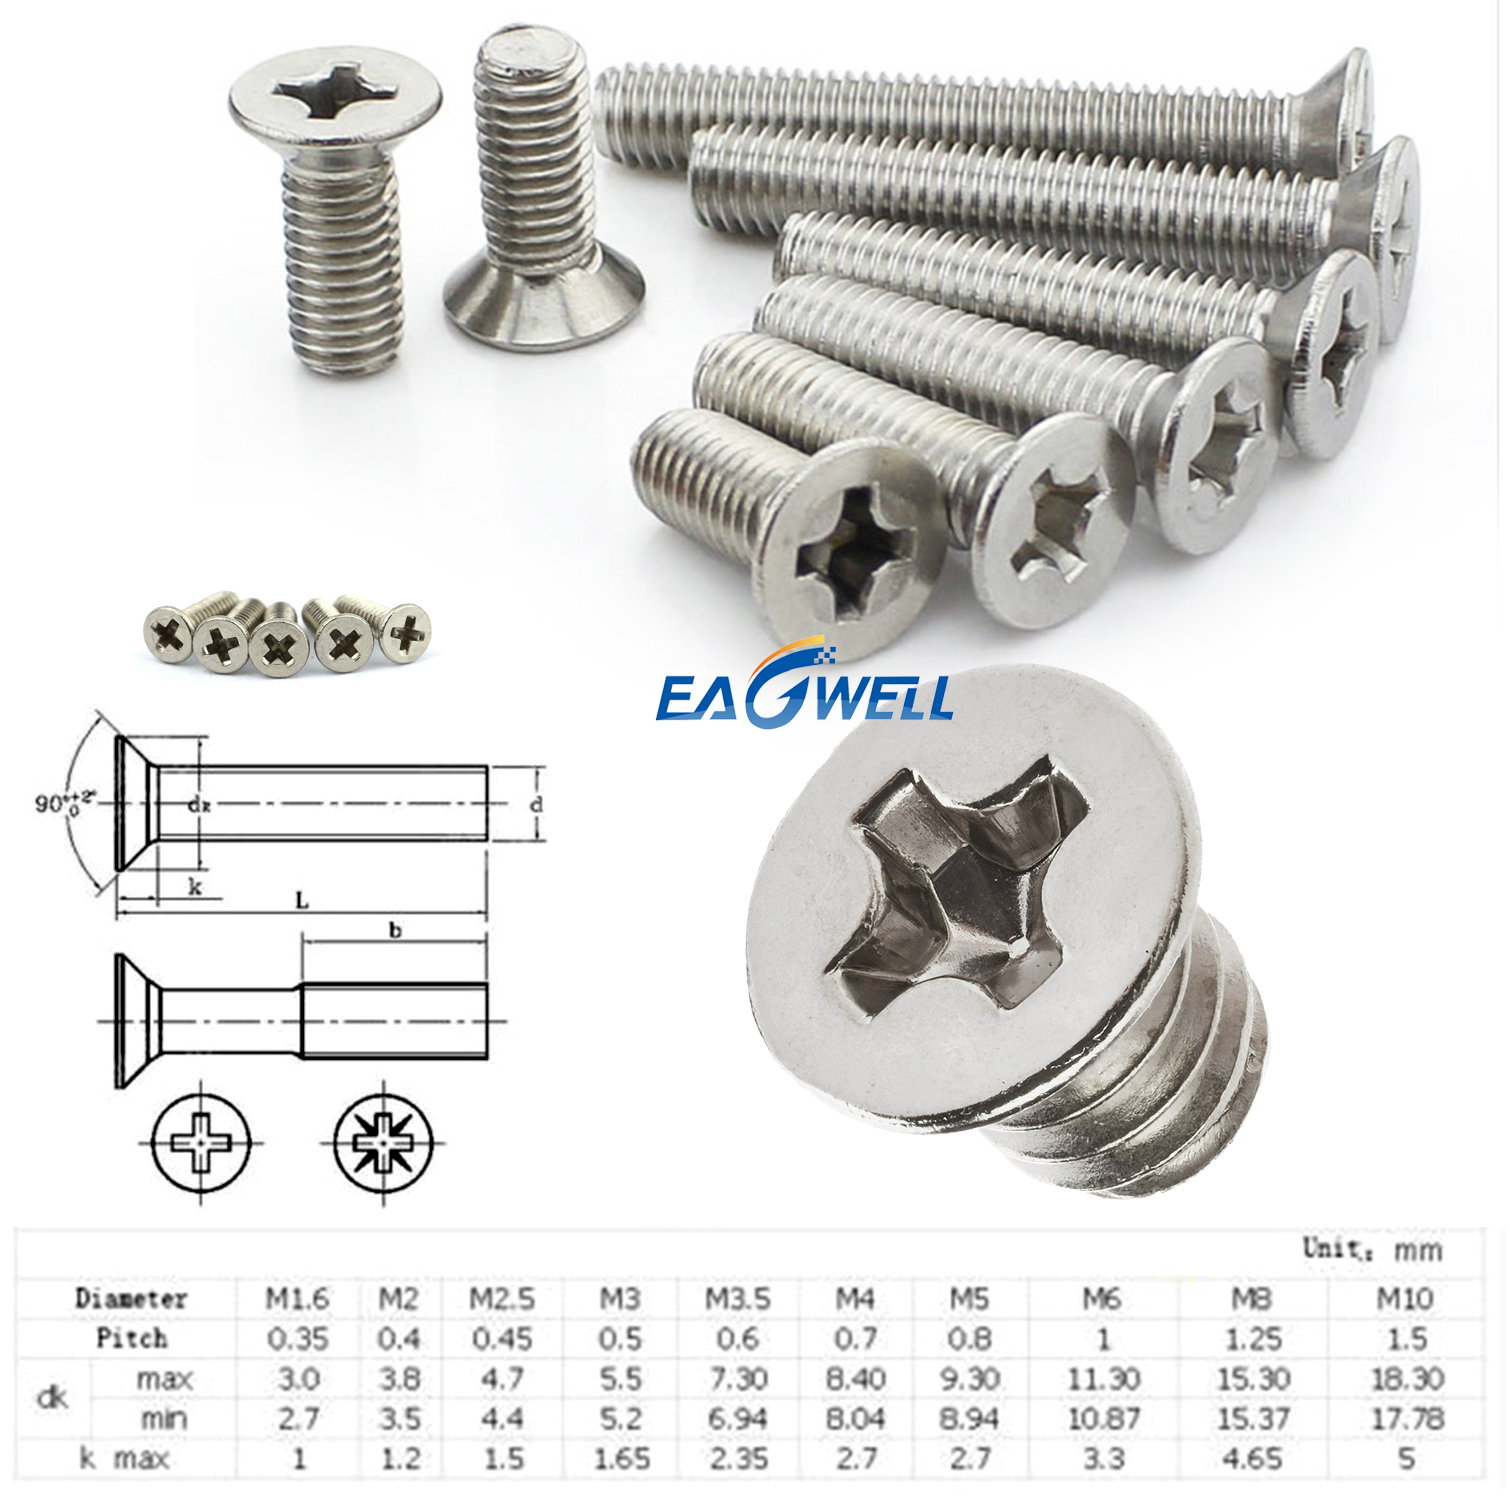 20 Pcs 5.2mm Thread Metal Furniture Phillips Connector Nuts Silver Tone